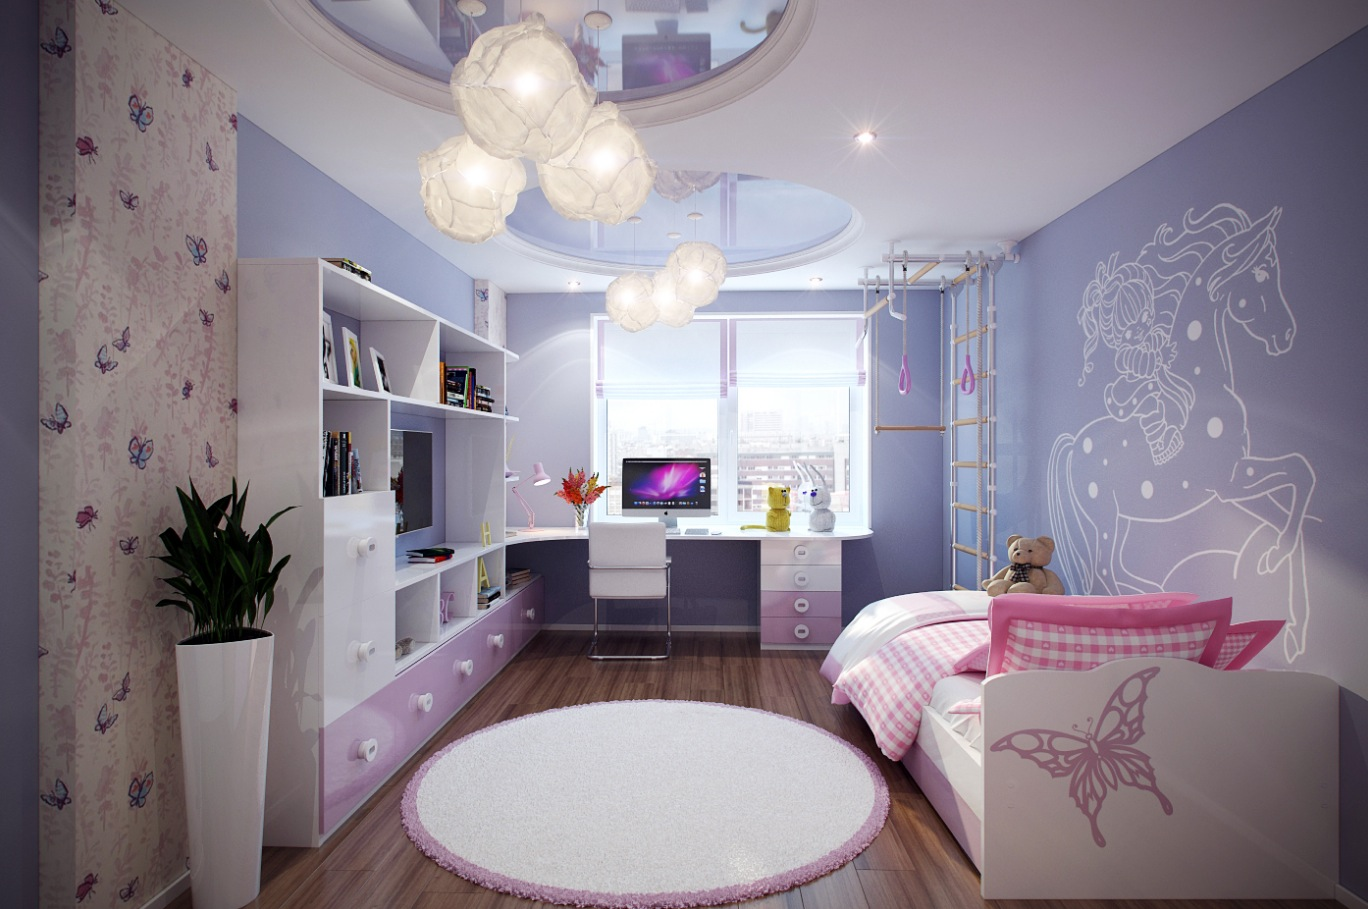 Casting color over kids rooms for Beautiful room design pics